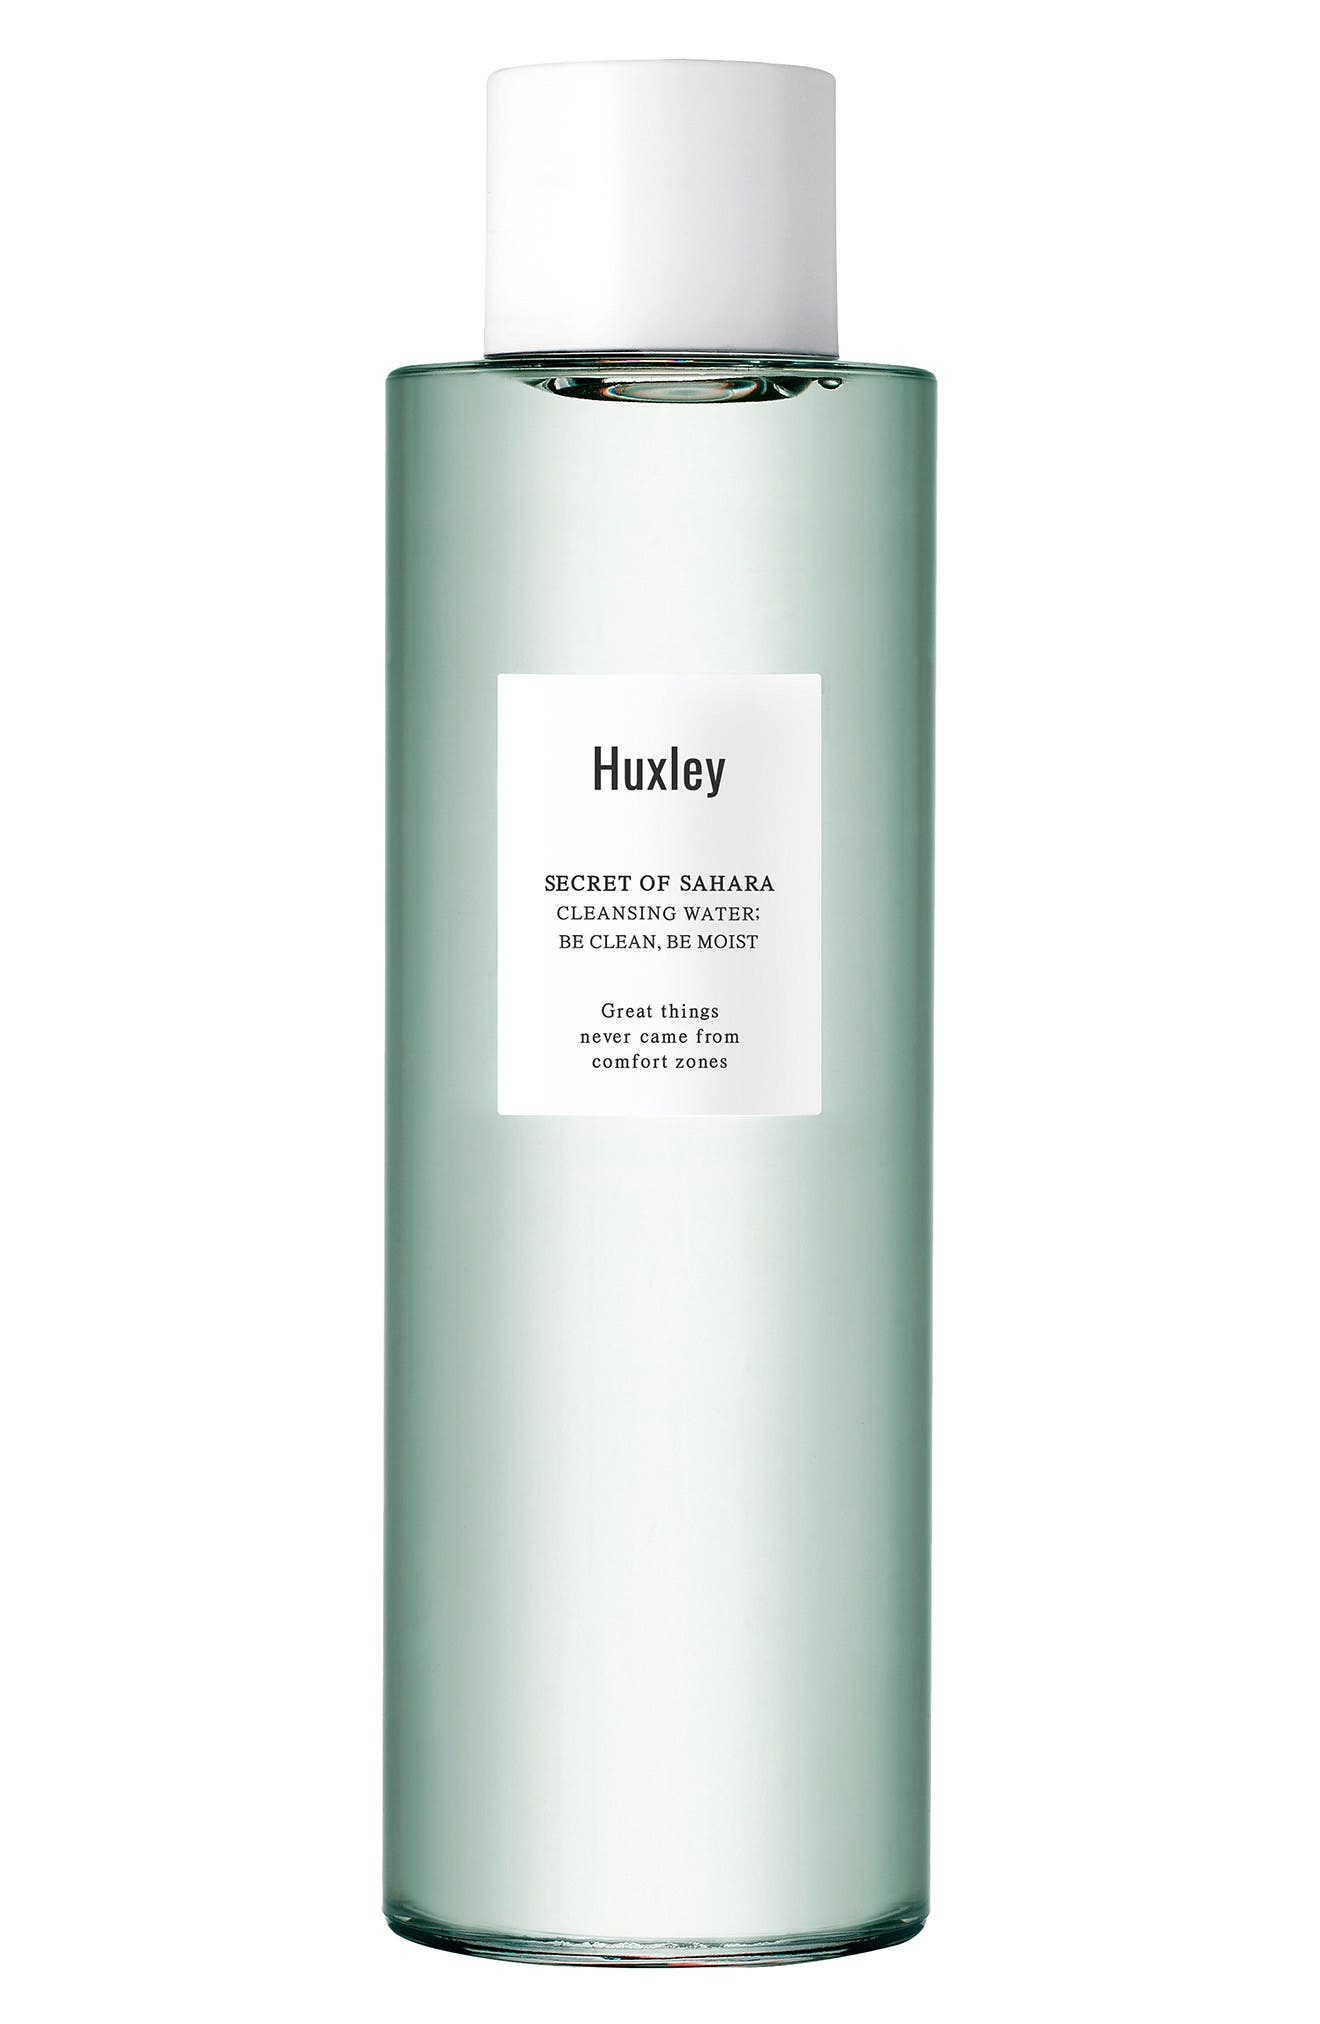 HUXLEY Secret Of Sahara - Be Clean Be Moist Cleansing Water